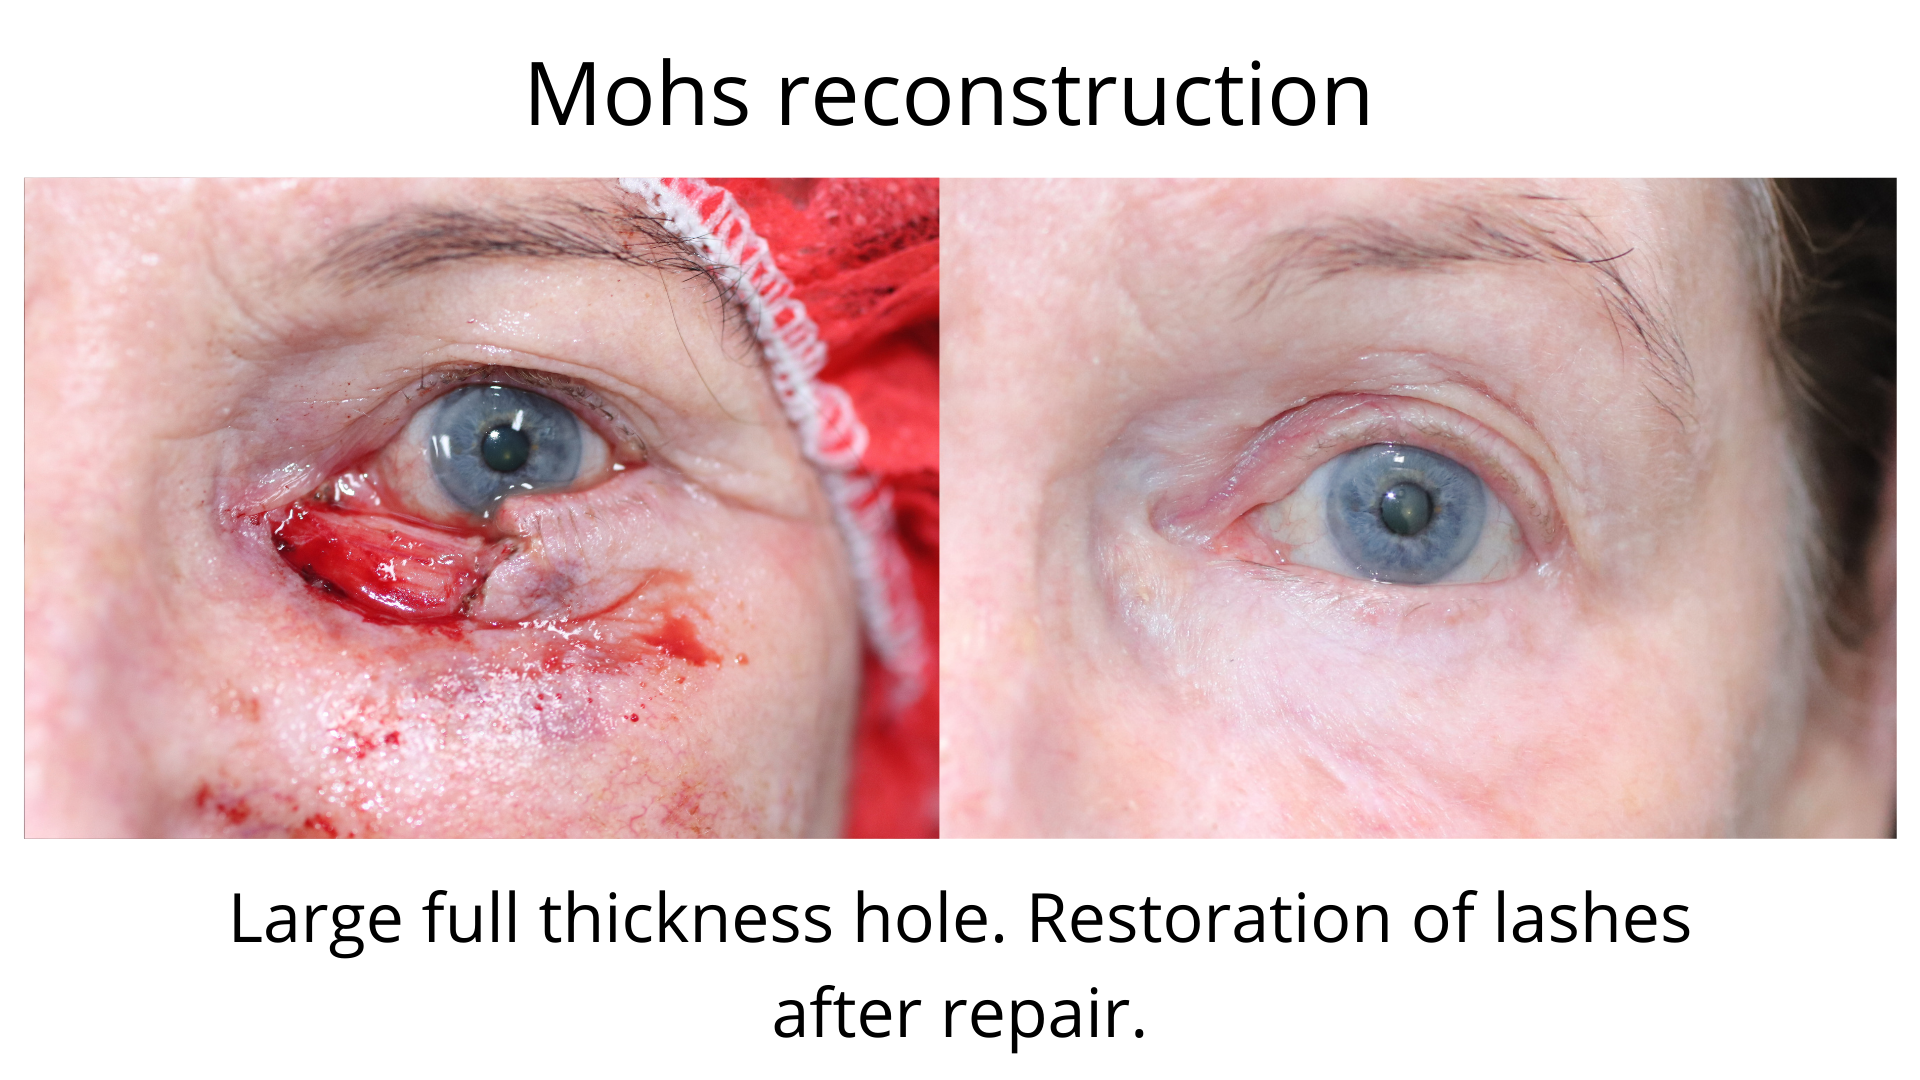 Before and after Mohs reconstruction. This shows the the surgical site where Mohs surgery has taken place and cancer has been removed. The second image shows the final result of reconstruction after Mohs Surgery. Performed at the Skin Hospital in Sydney.